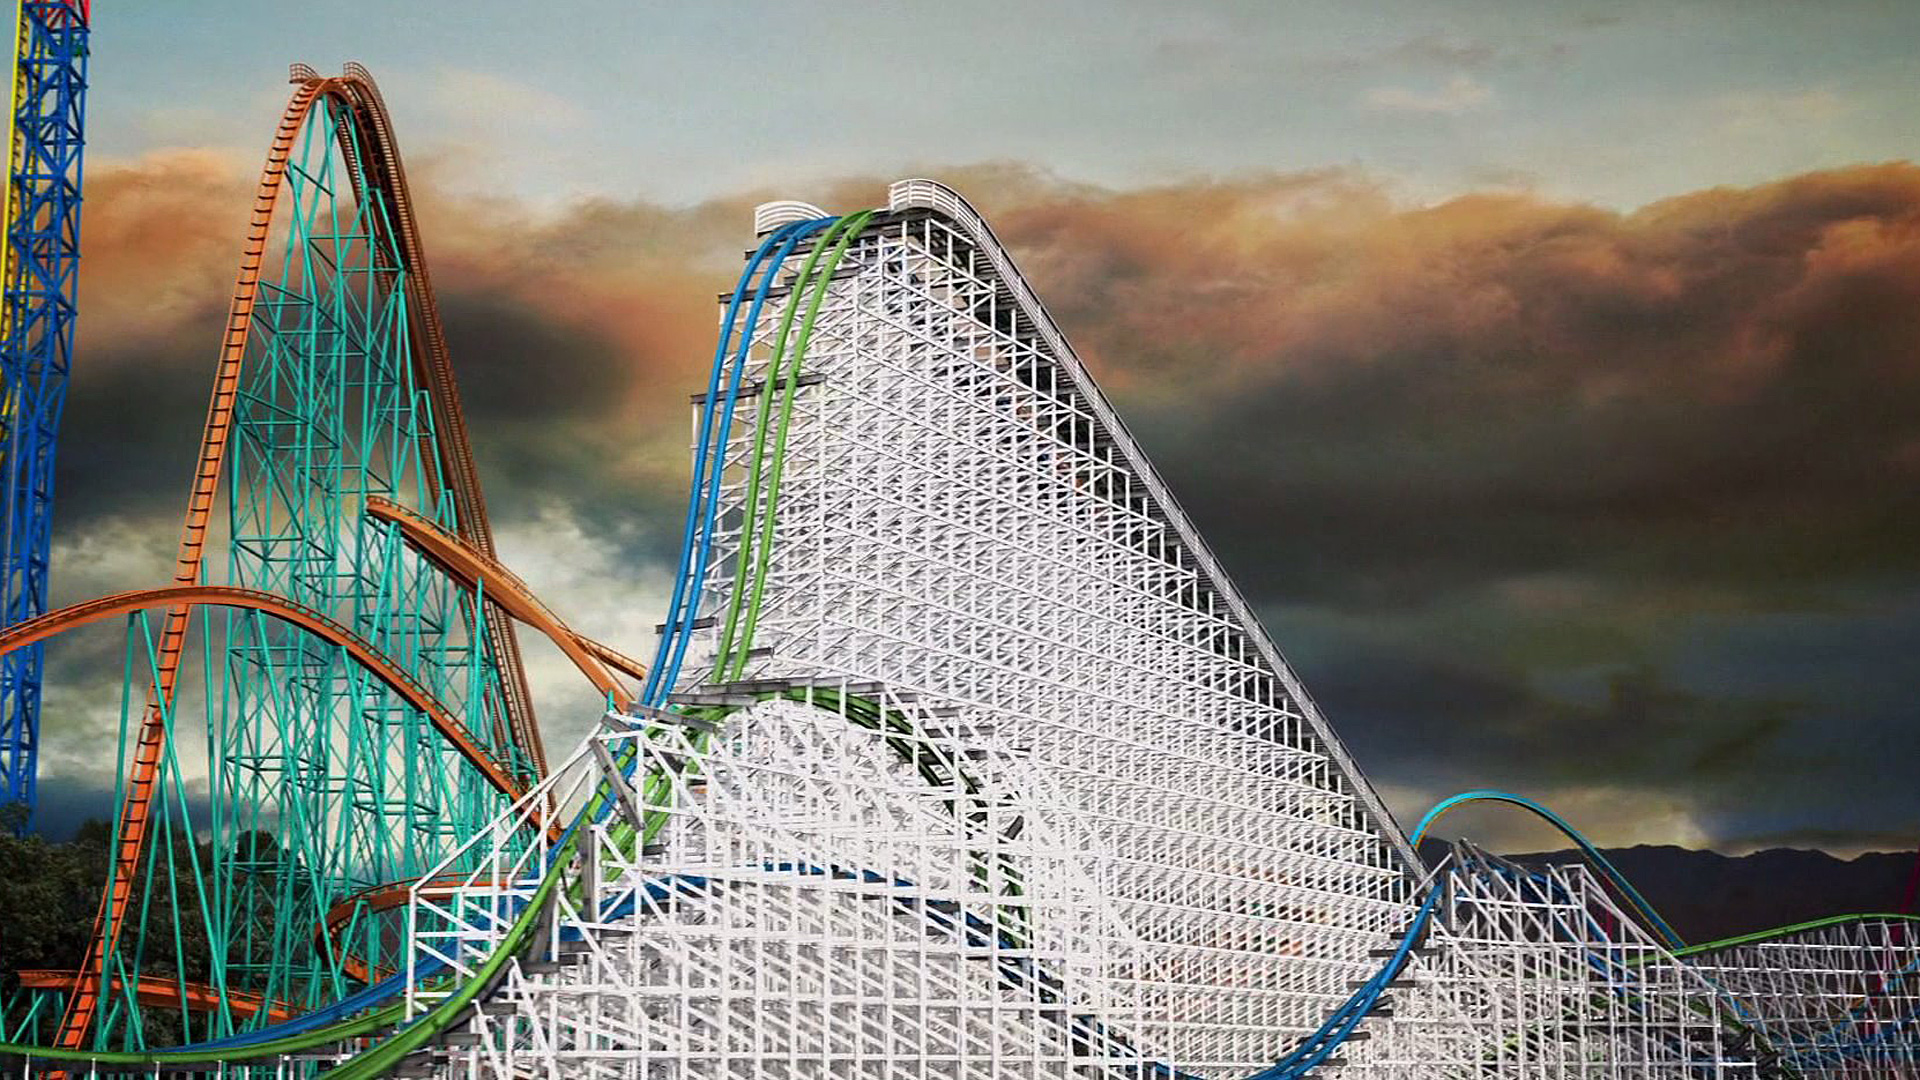 A preview image of Twisted Colossus provided by Six Flags Magic Mountain.